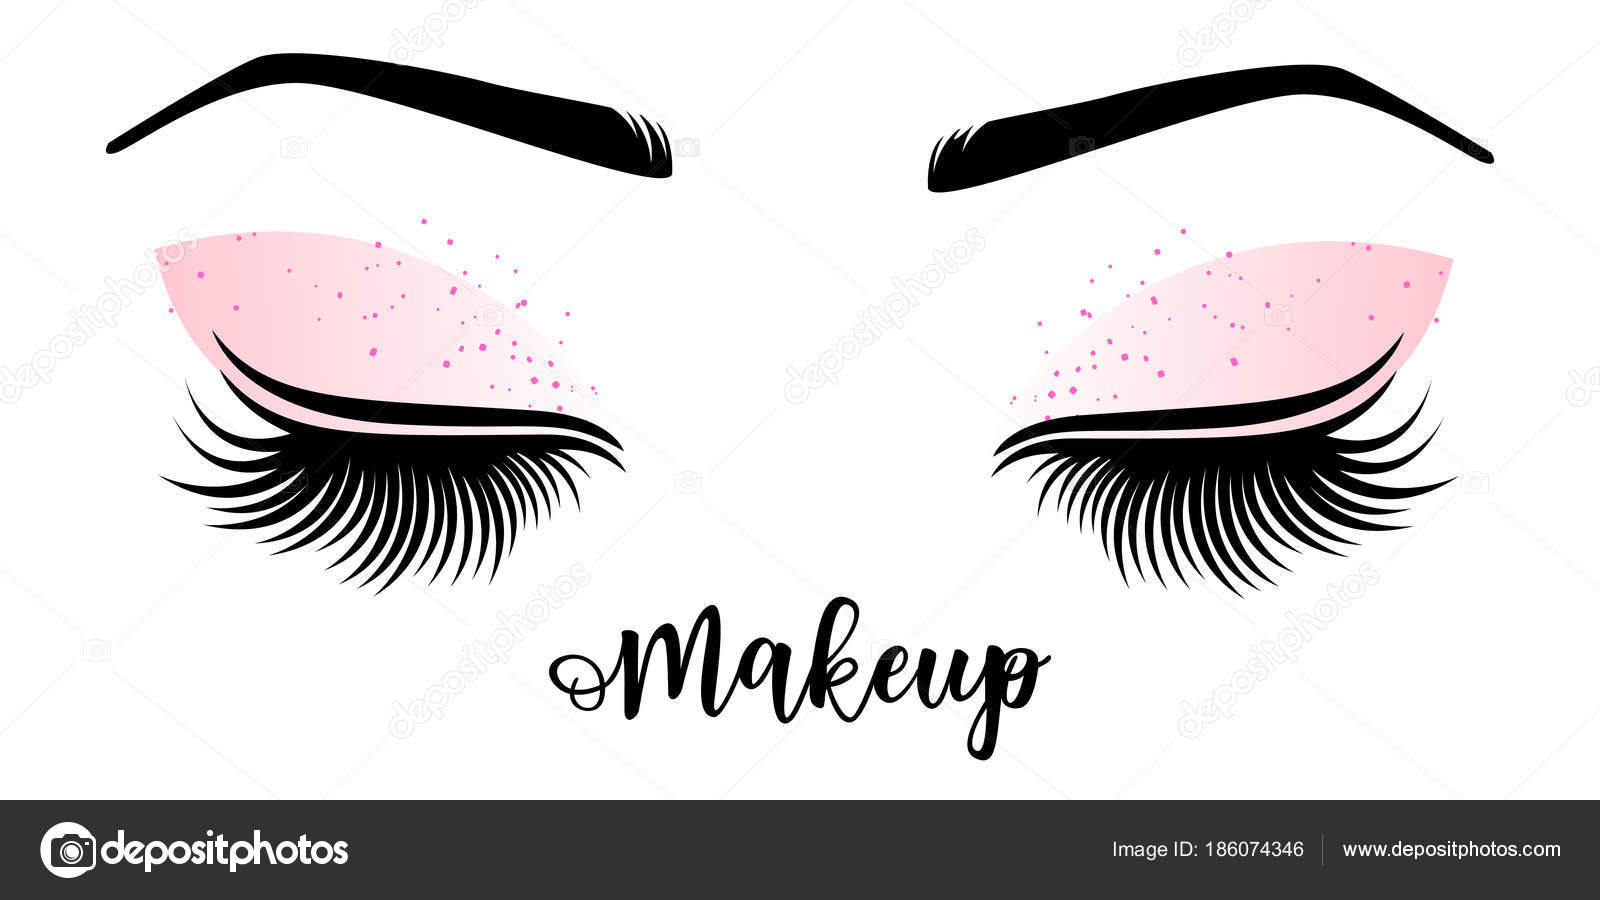 makeup logo vector makeup vidalondon